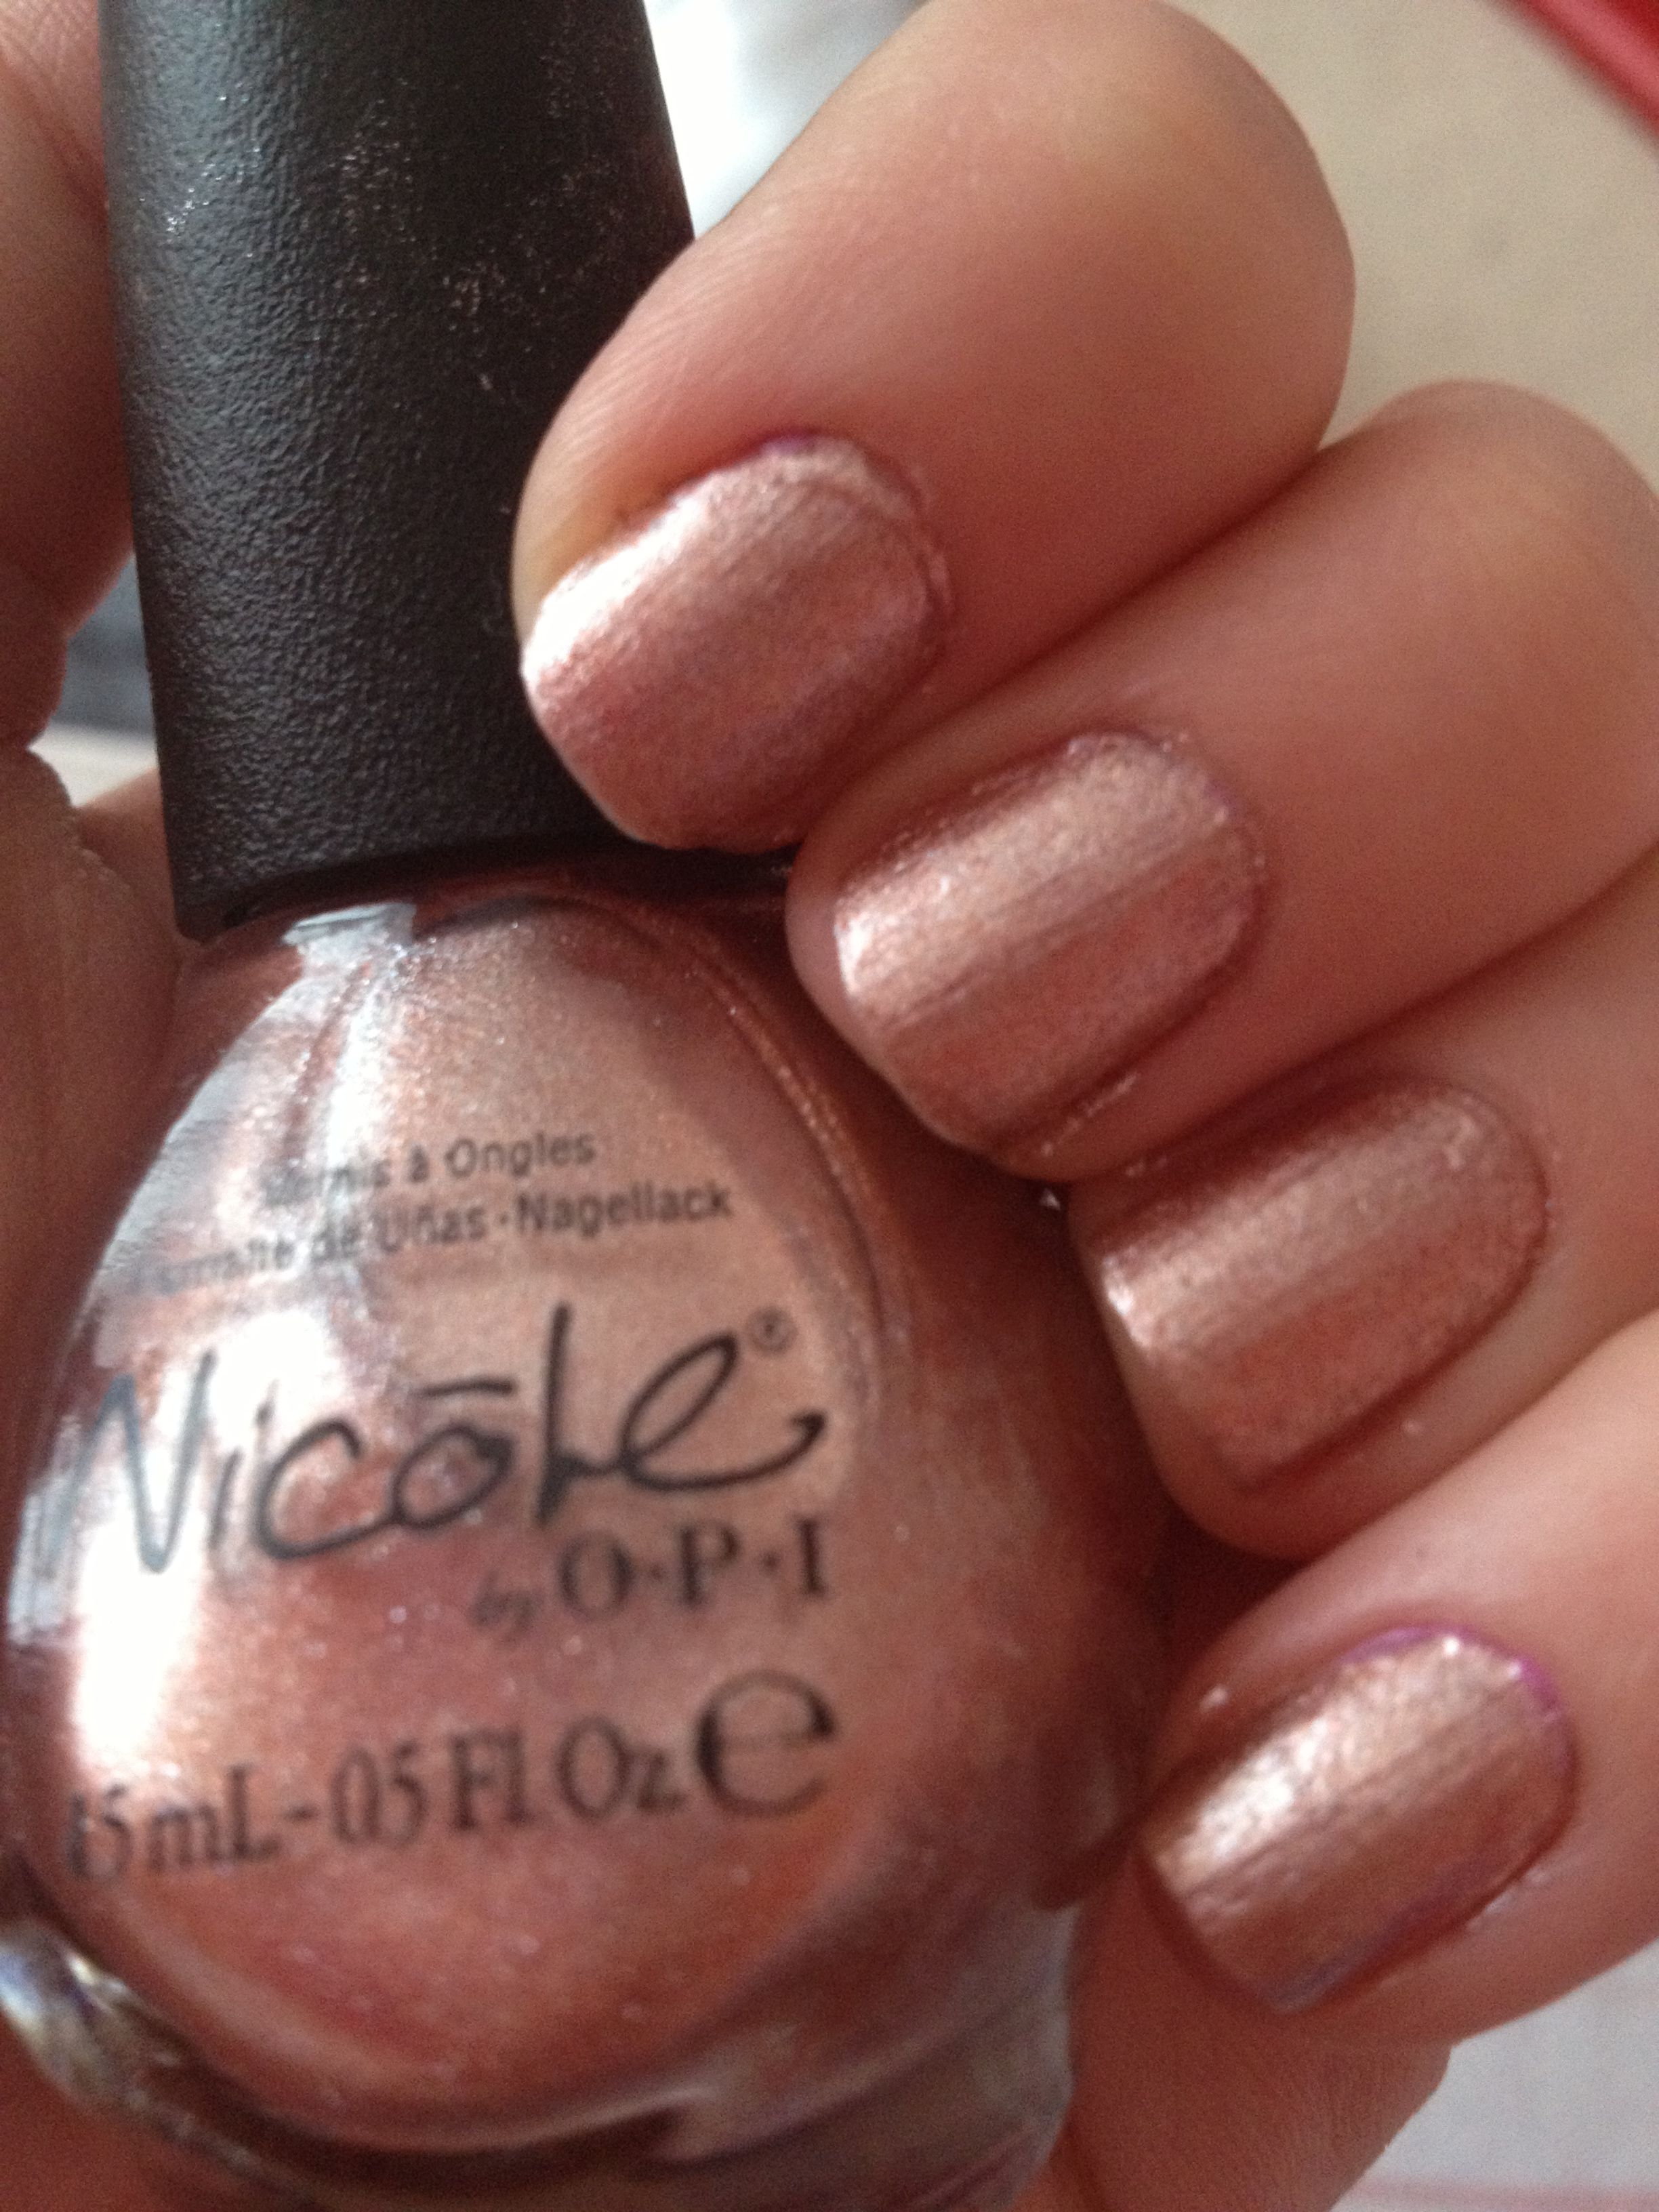 Rose gold nail polish<3 Nichole by opi \'it starts with me\' | Hair ...